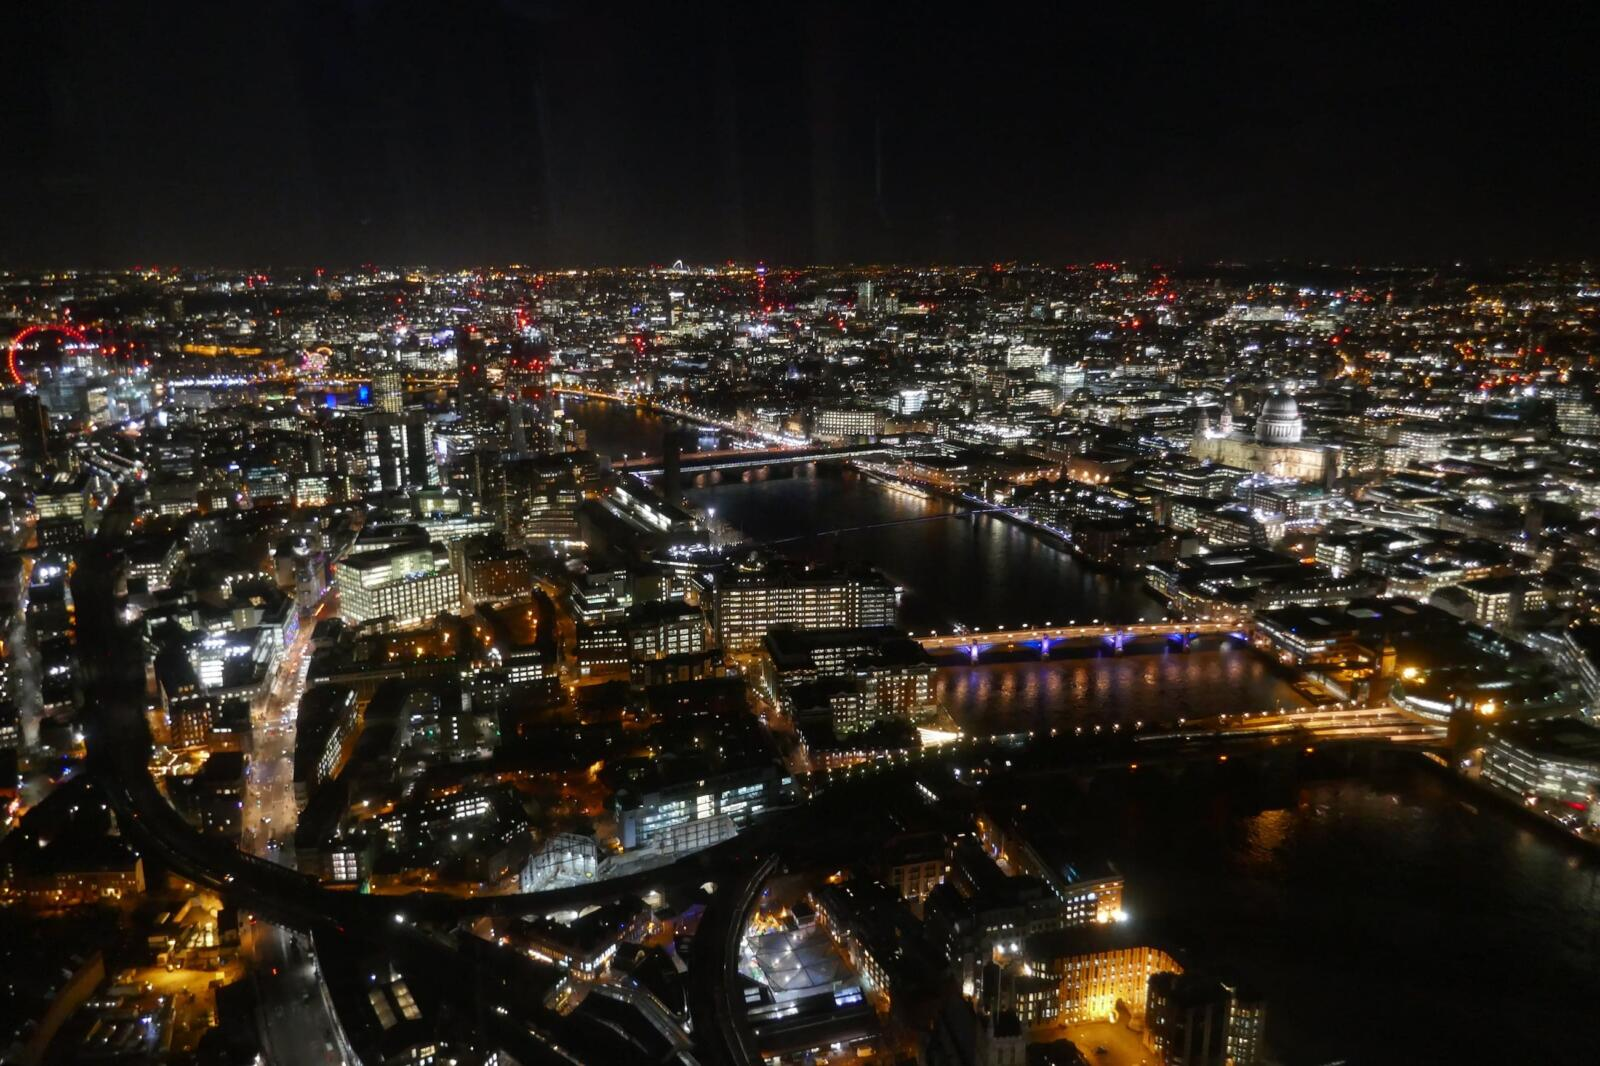 Shard view one of best sightseeing highlights of London